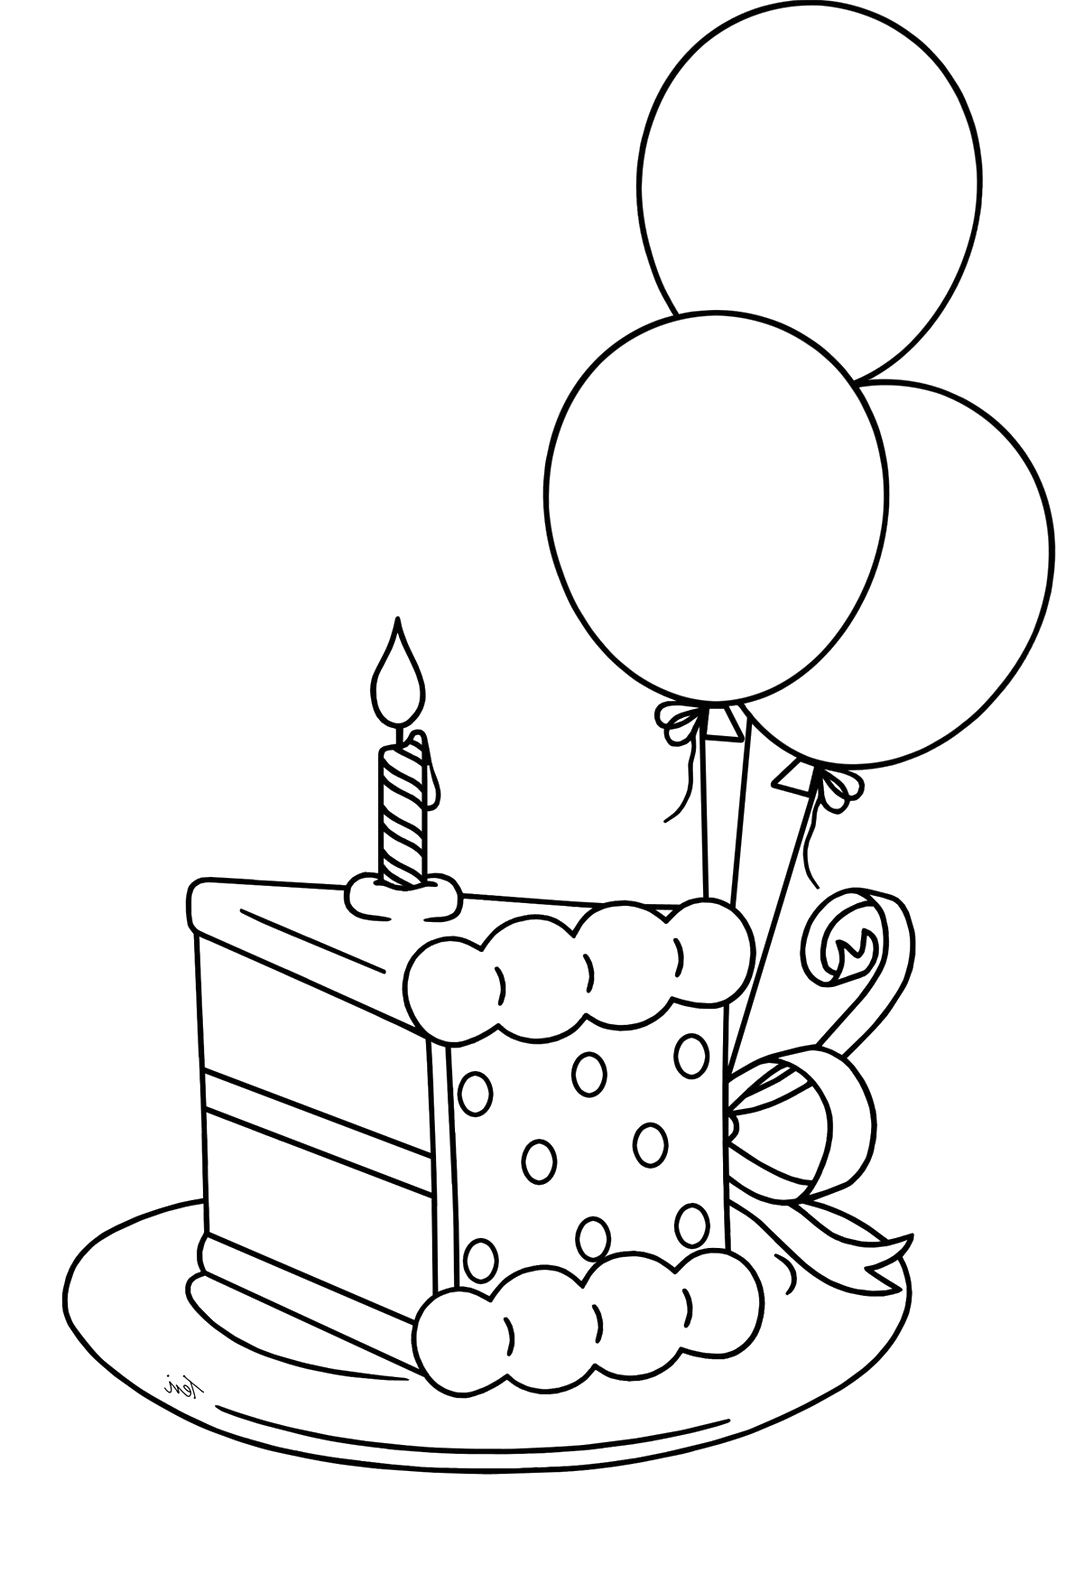 Slice The Cake That Will Be Packed Birthday Coloring Pages digi